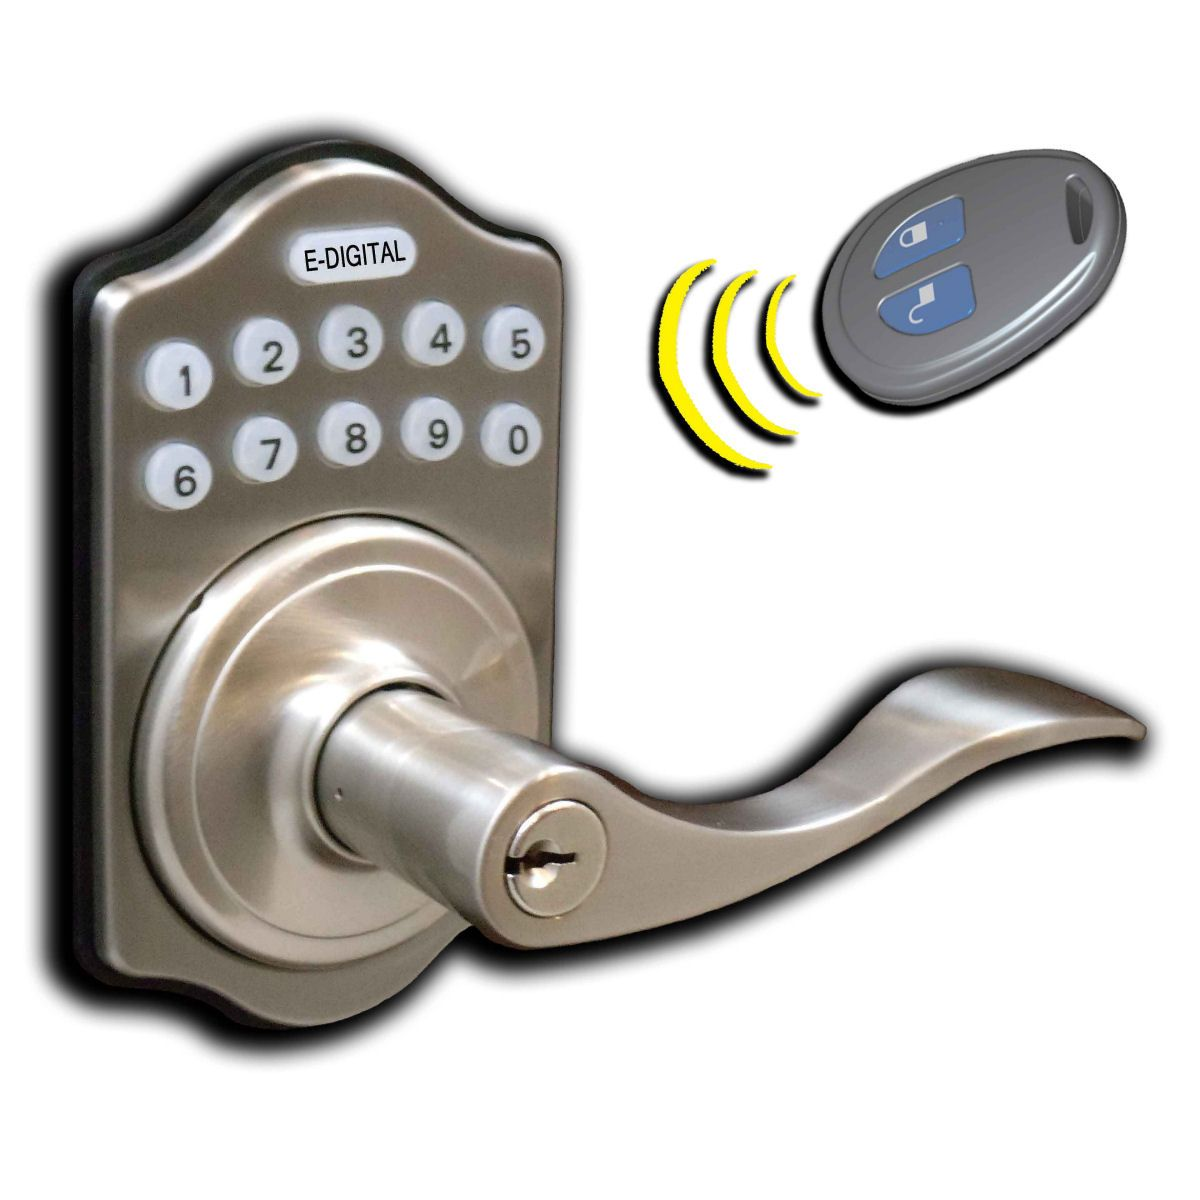 Made for residential use only Operate 1 or more locks with